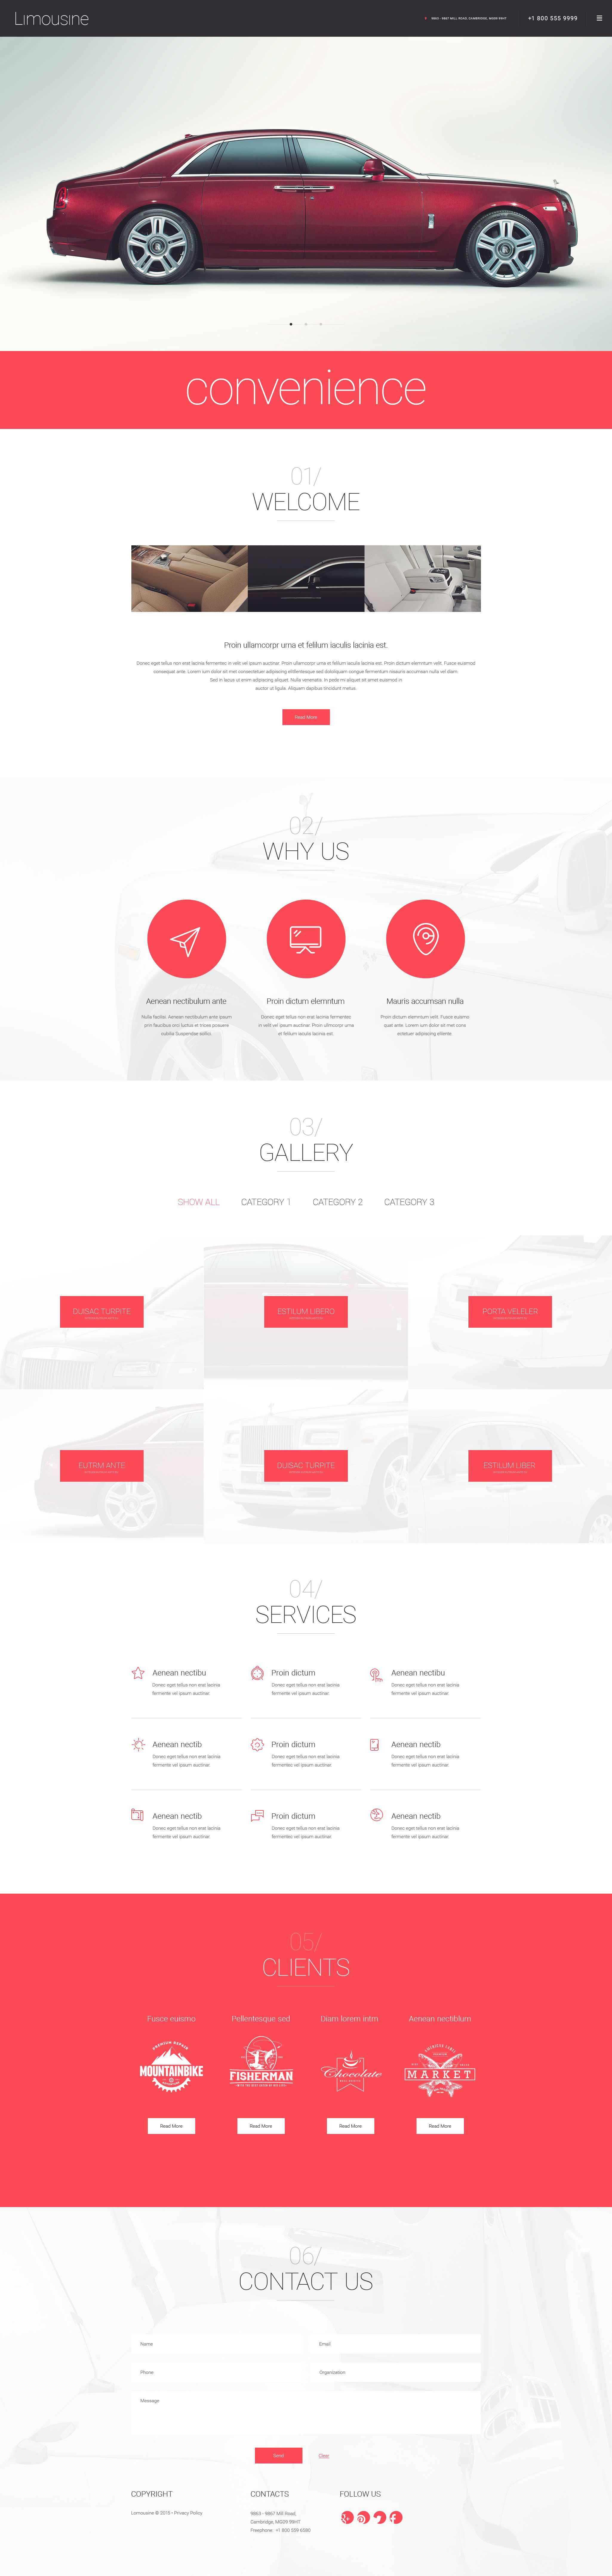 Limousine WordPress Theme - screenshot